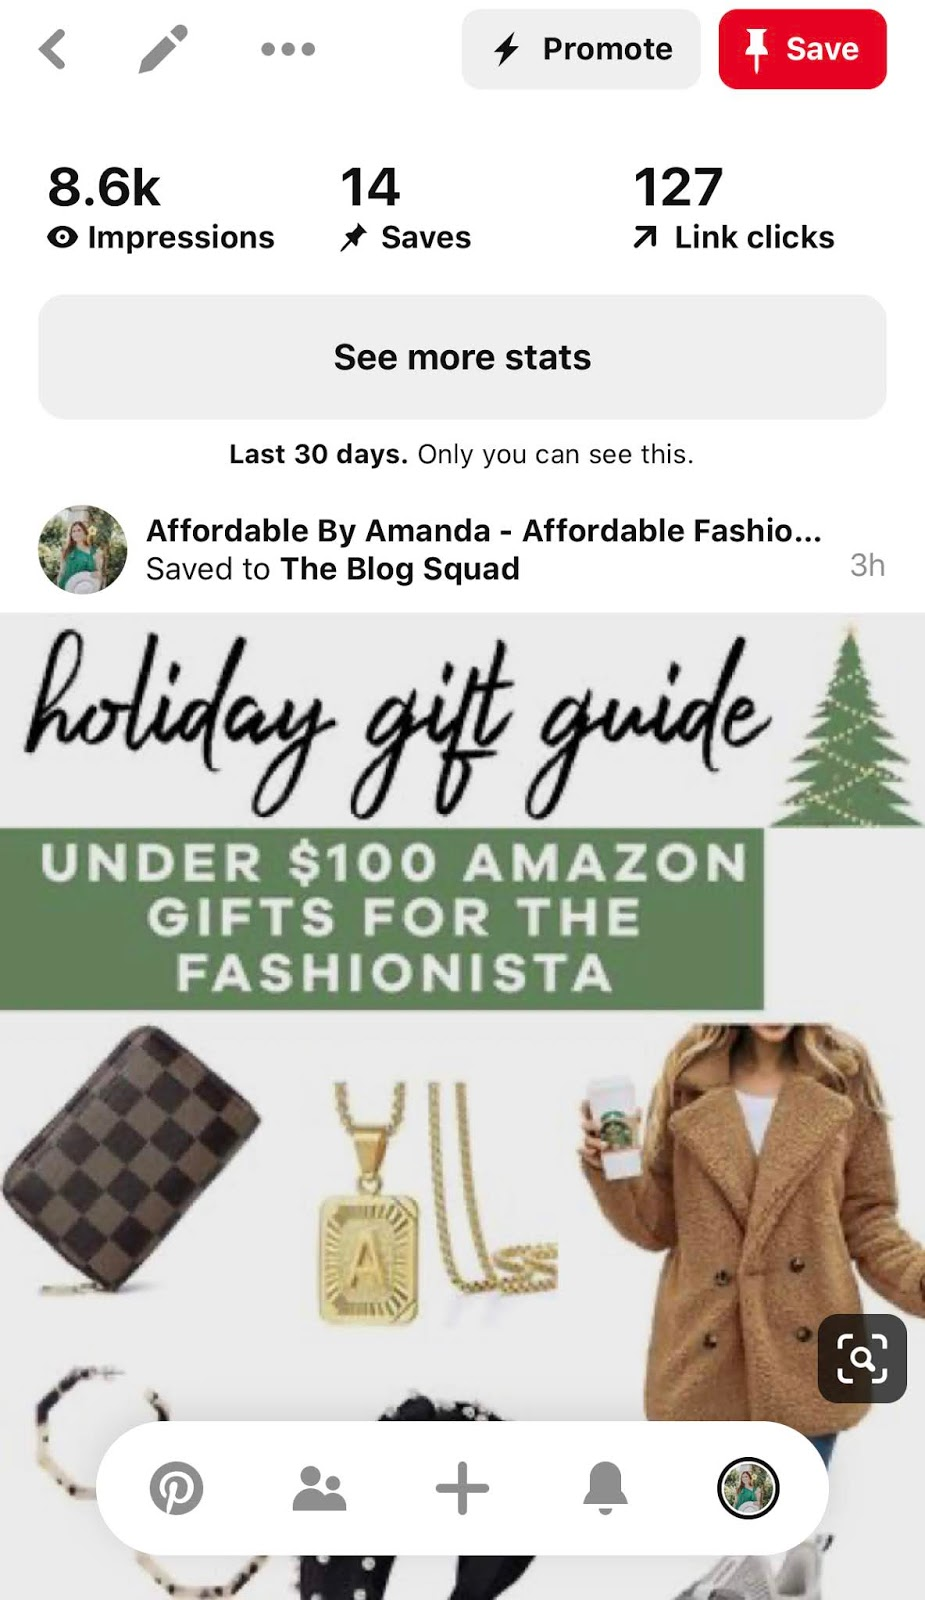 How to Make Your First $100 on LIKEtoKNOW.it as an Influencer | Amazon Holiday Gift Guide For Men on Pinterest